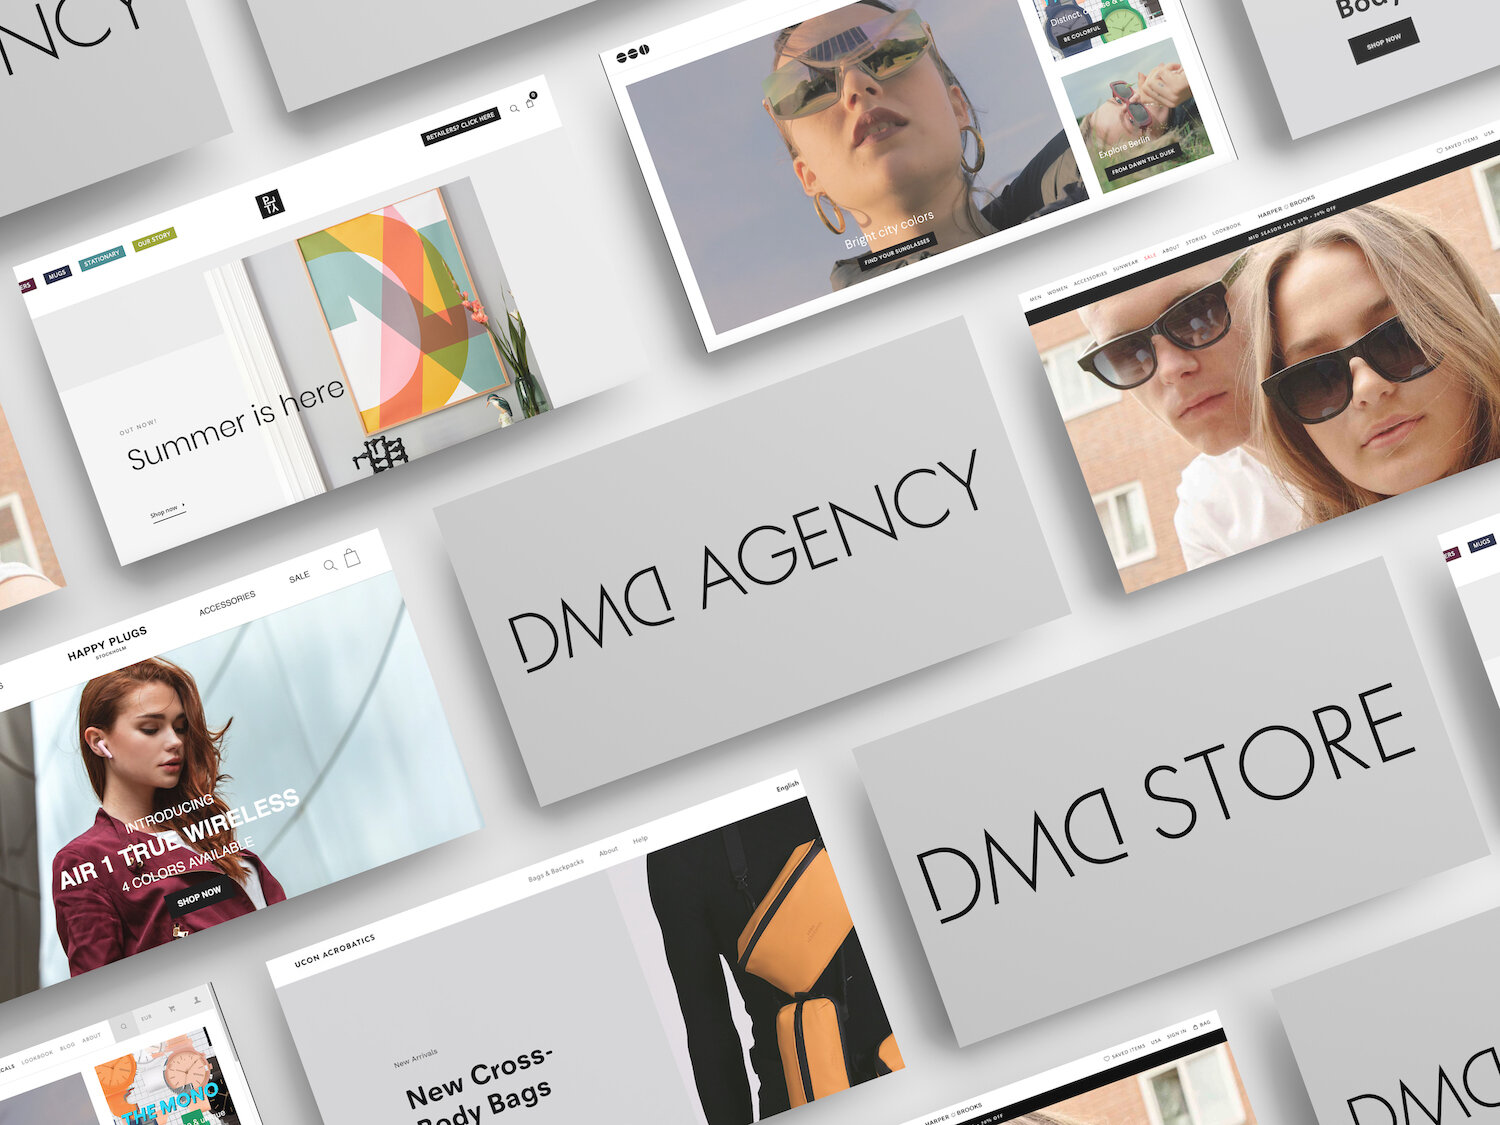 dma-agency-front-page 1500.jpg